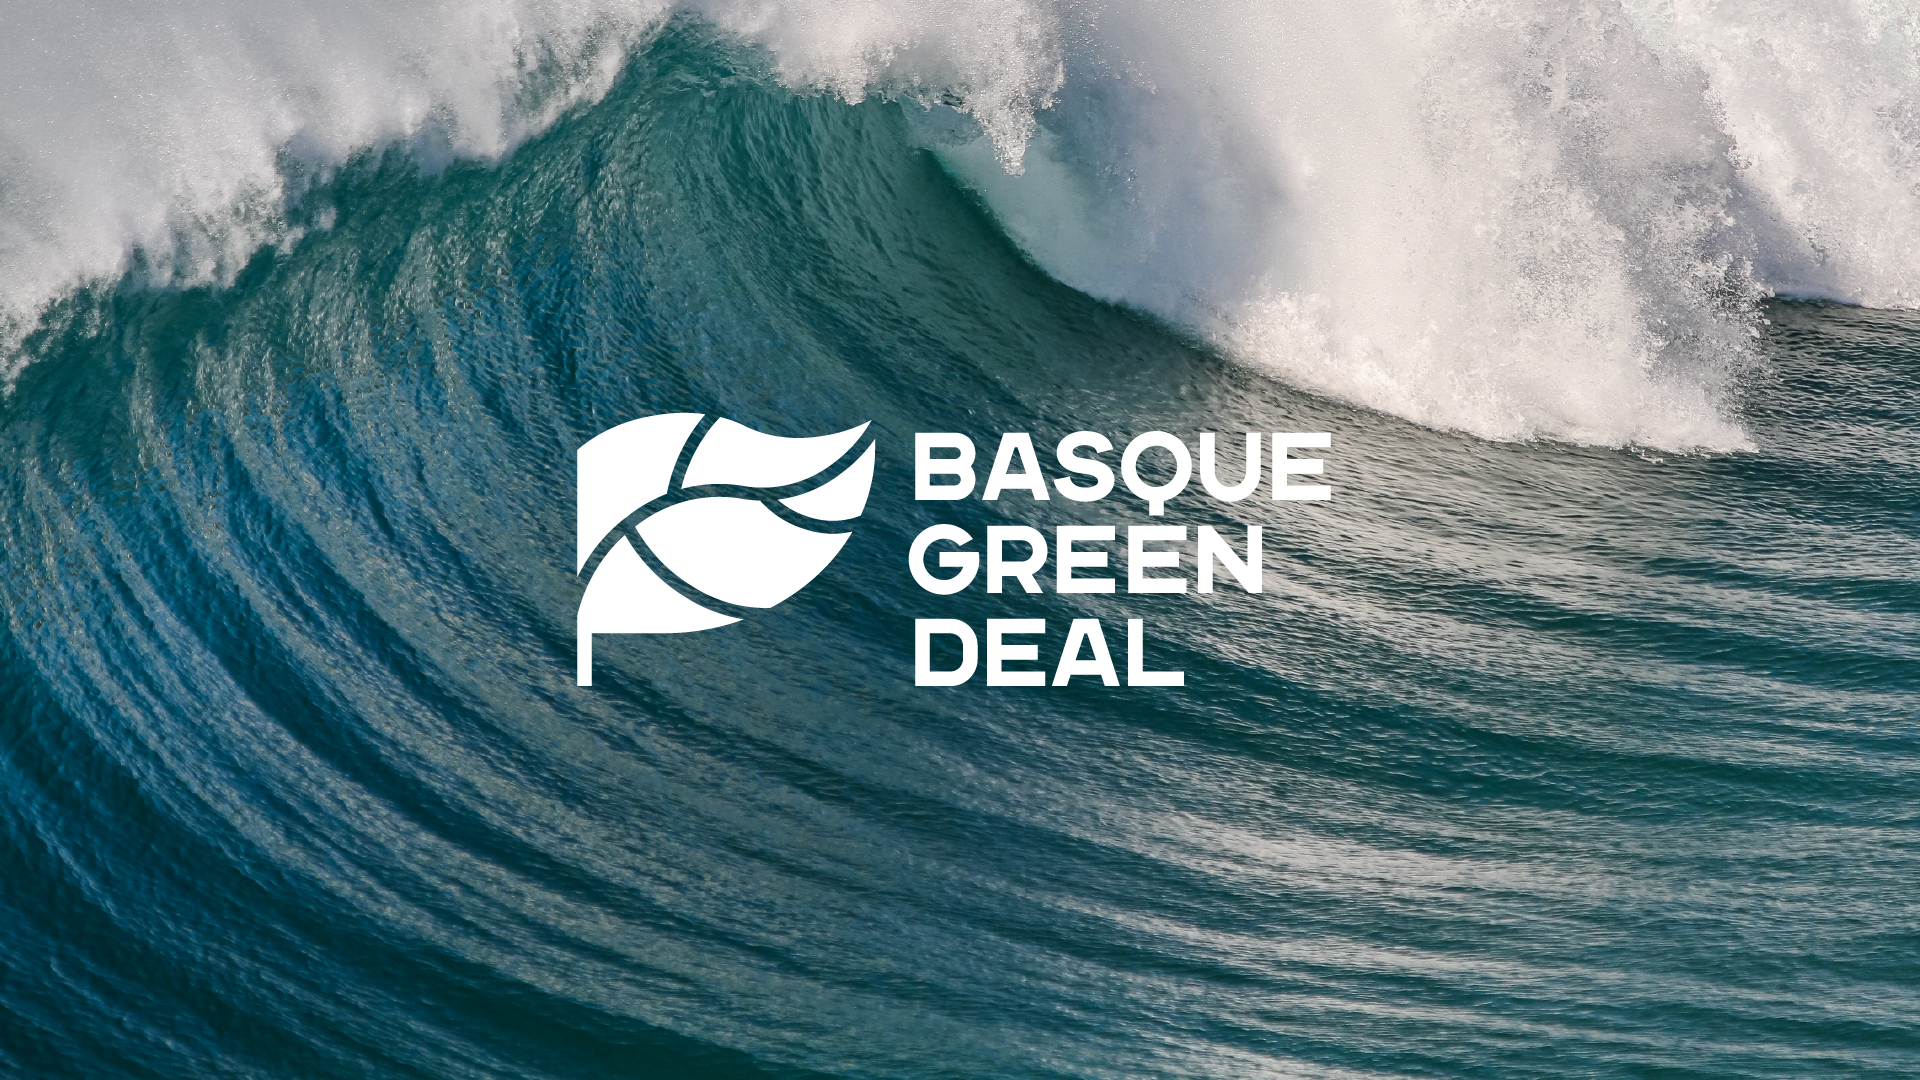 Basque_Green_Deal_10R.png